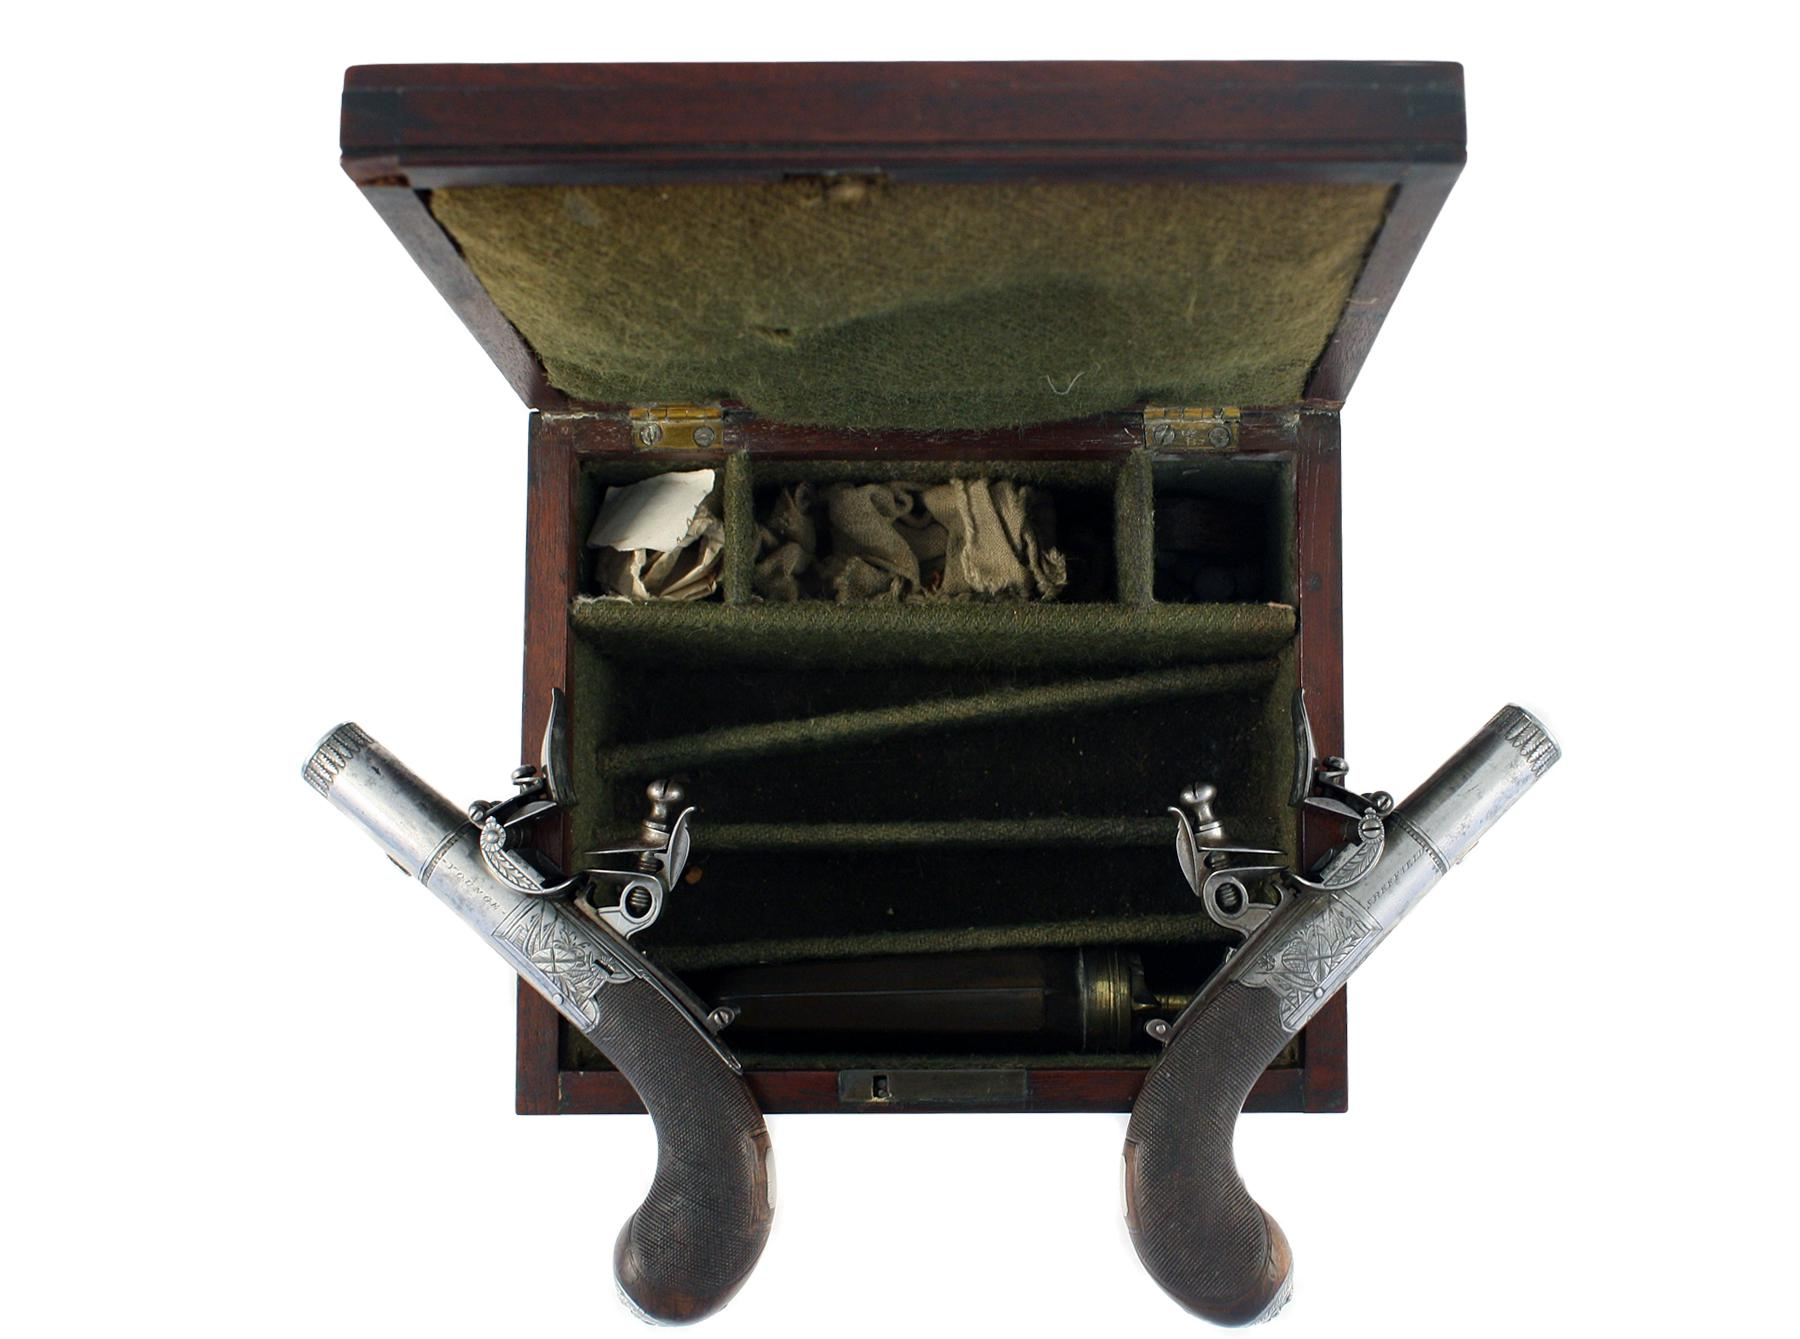 A Cased Pair of Pocket Pistols